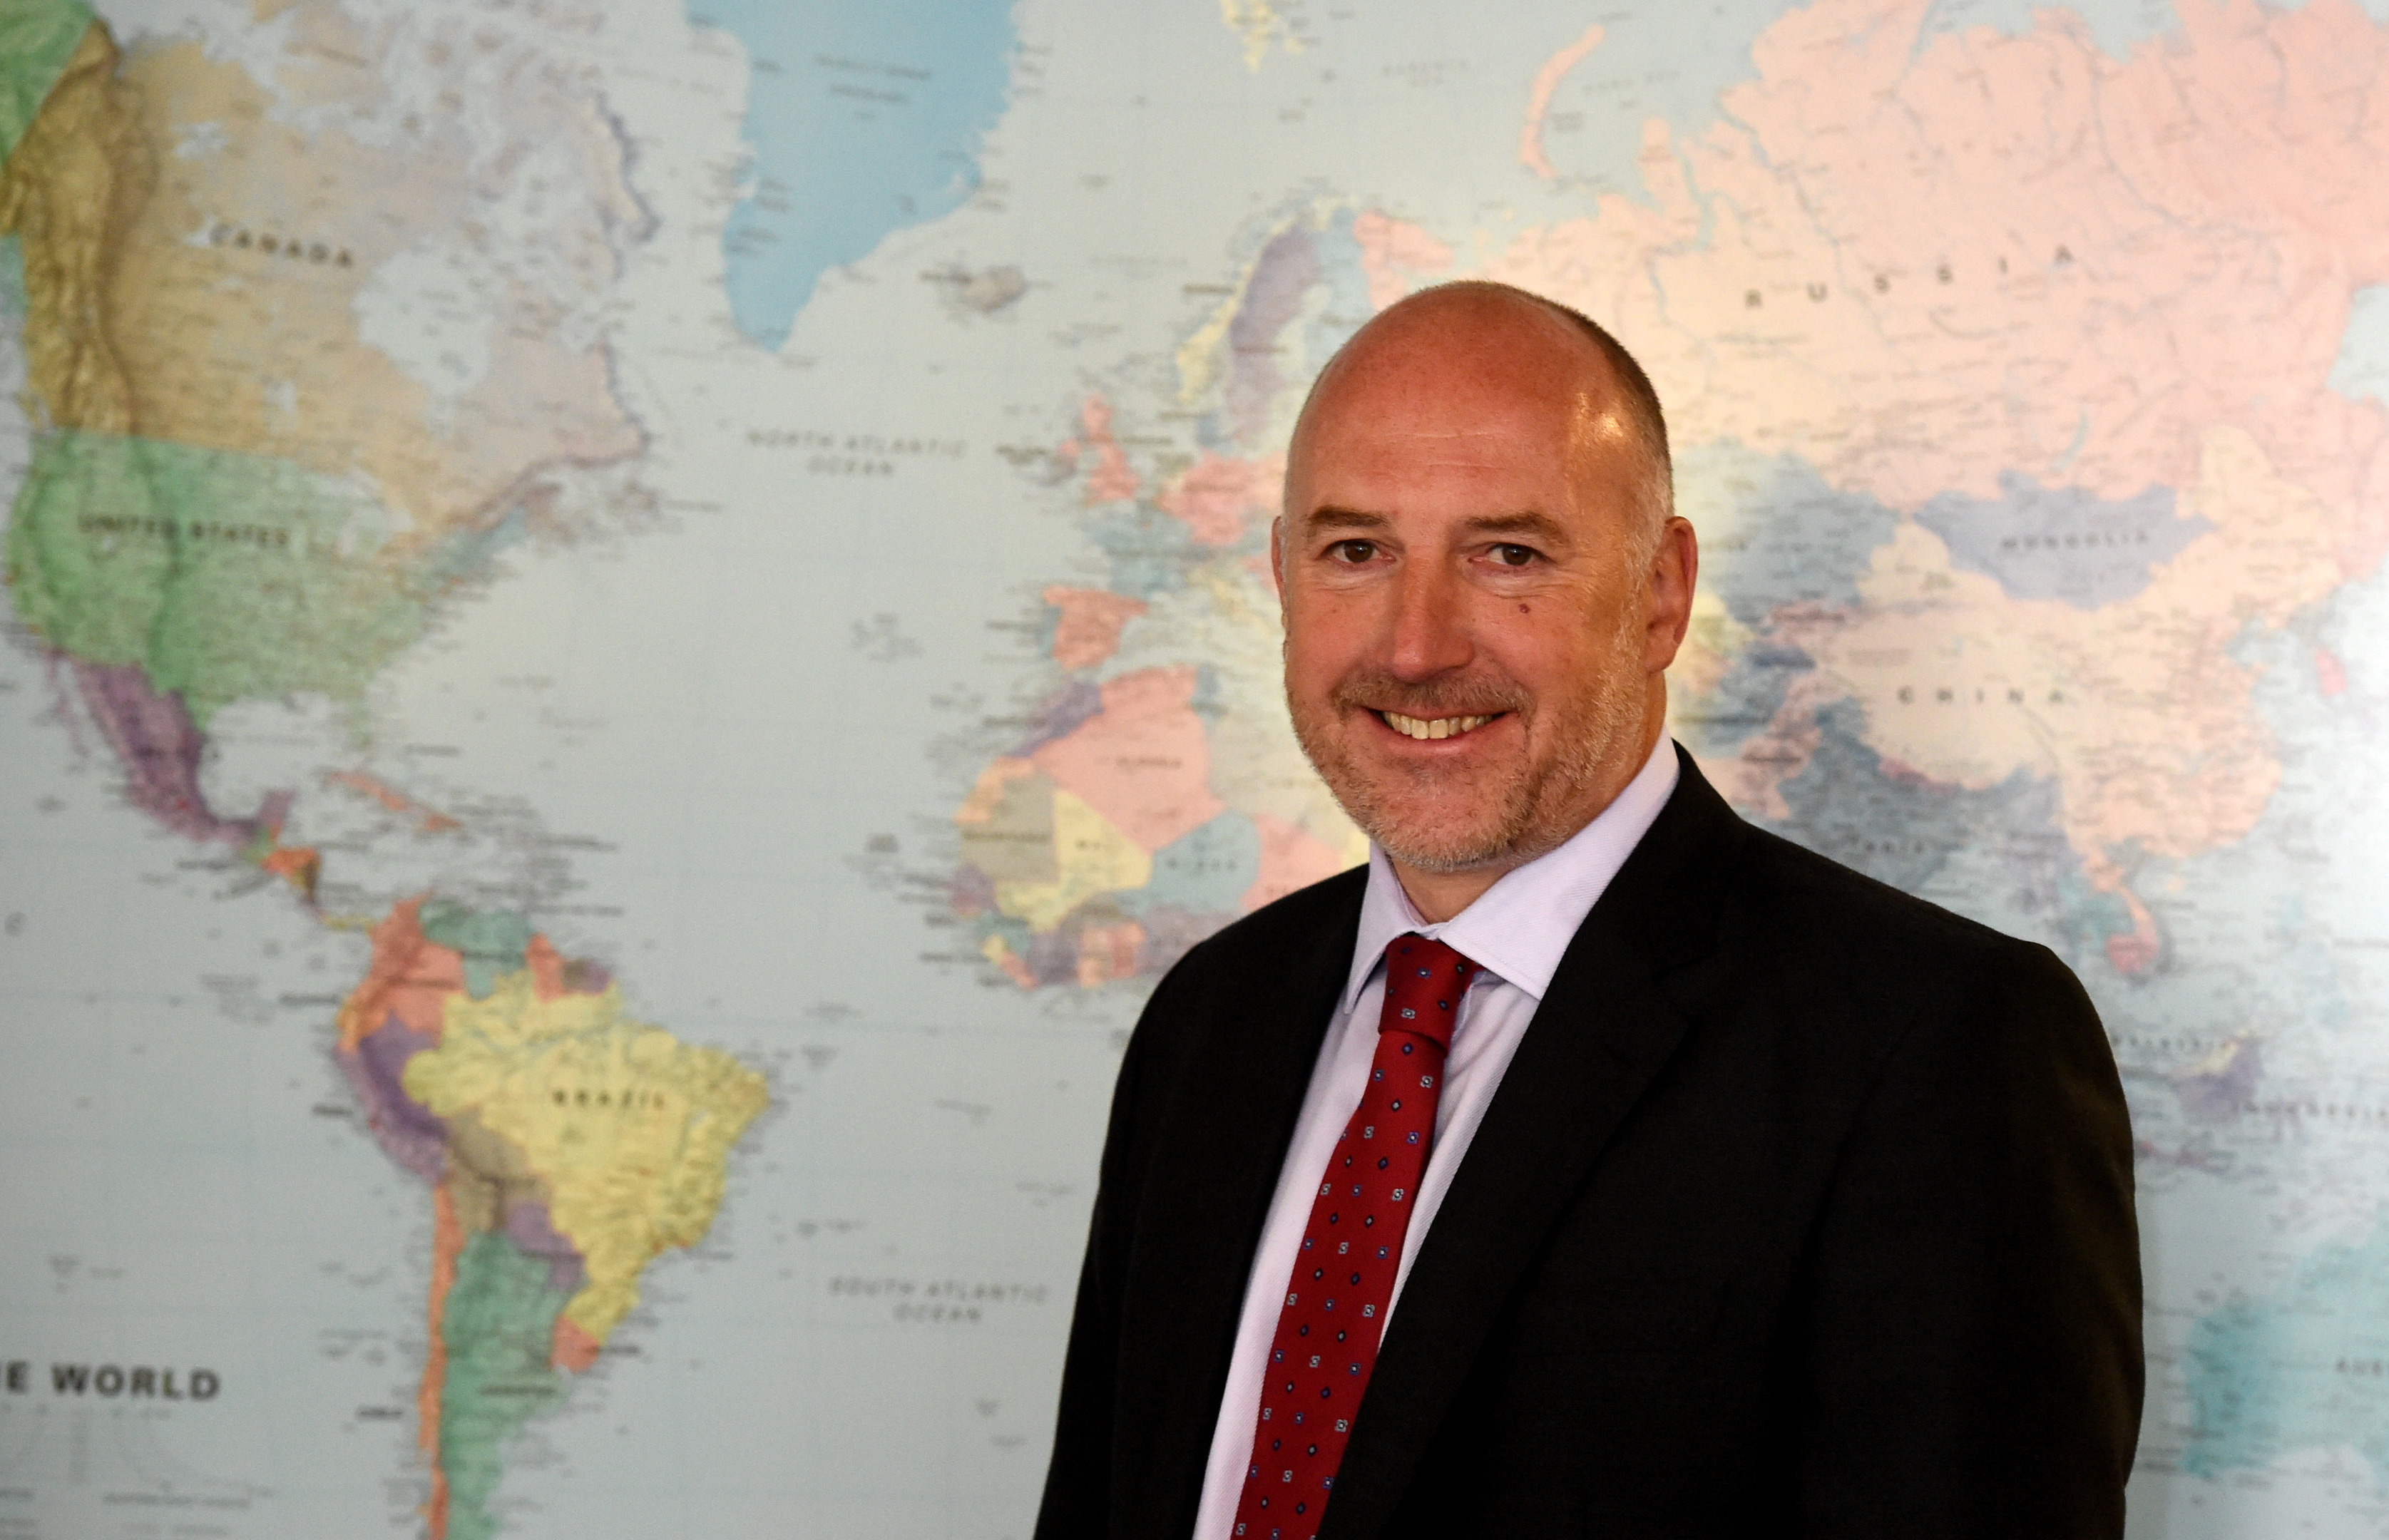 Mr Beveridge, UK co-head of corporate finance specialist Simmons Energy